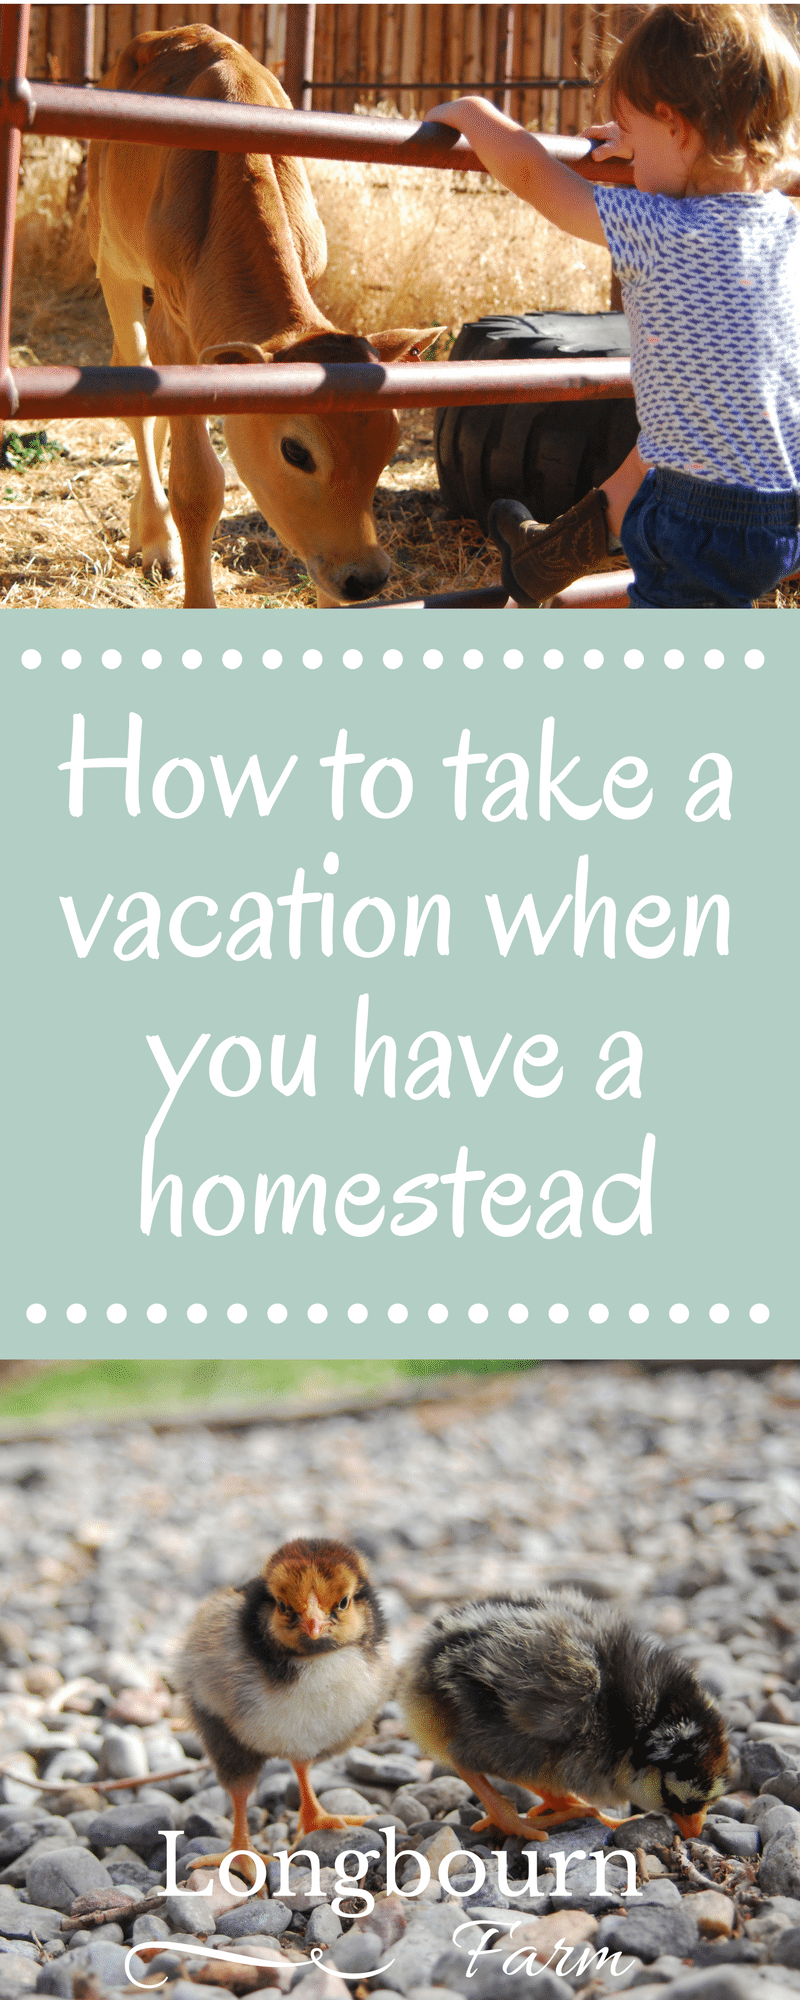 How to take a vacation when you have a homestead or small farm: Keep farm jobs low maintenance, plan trips at the right time, & hire help. Get the details! via @longbournfarm